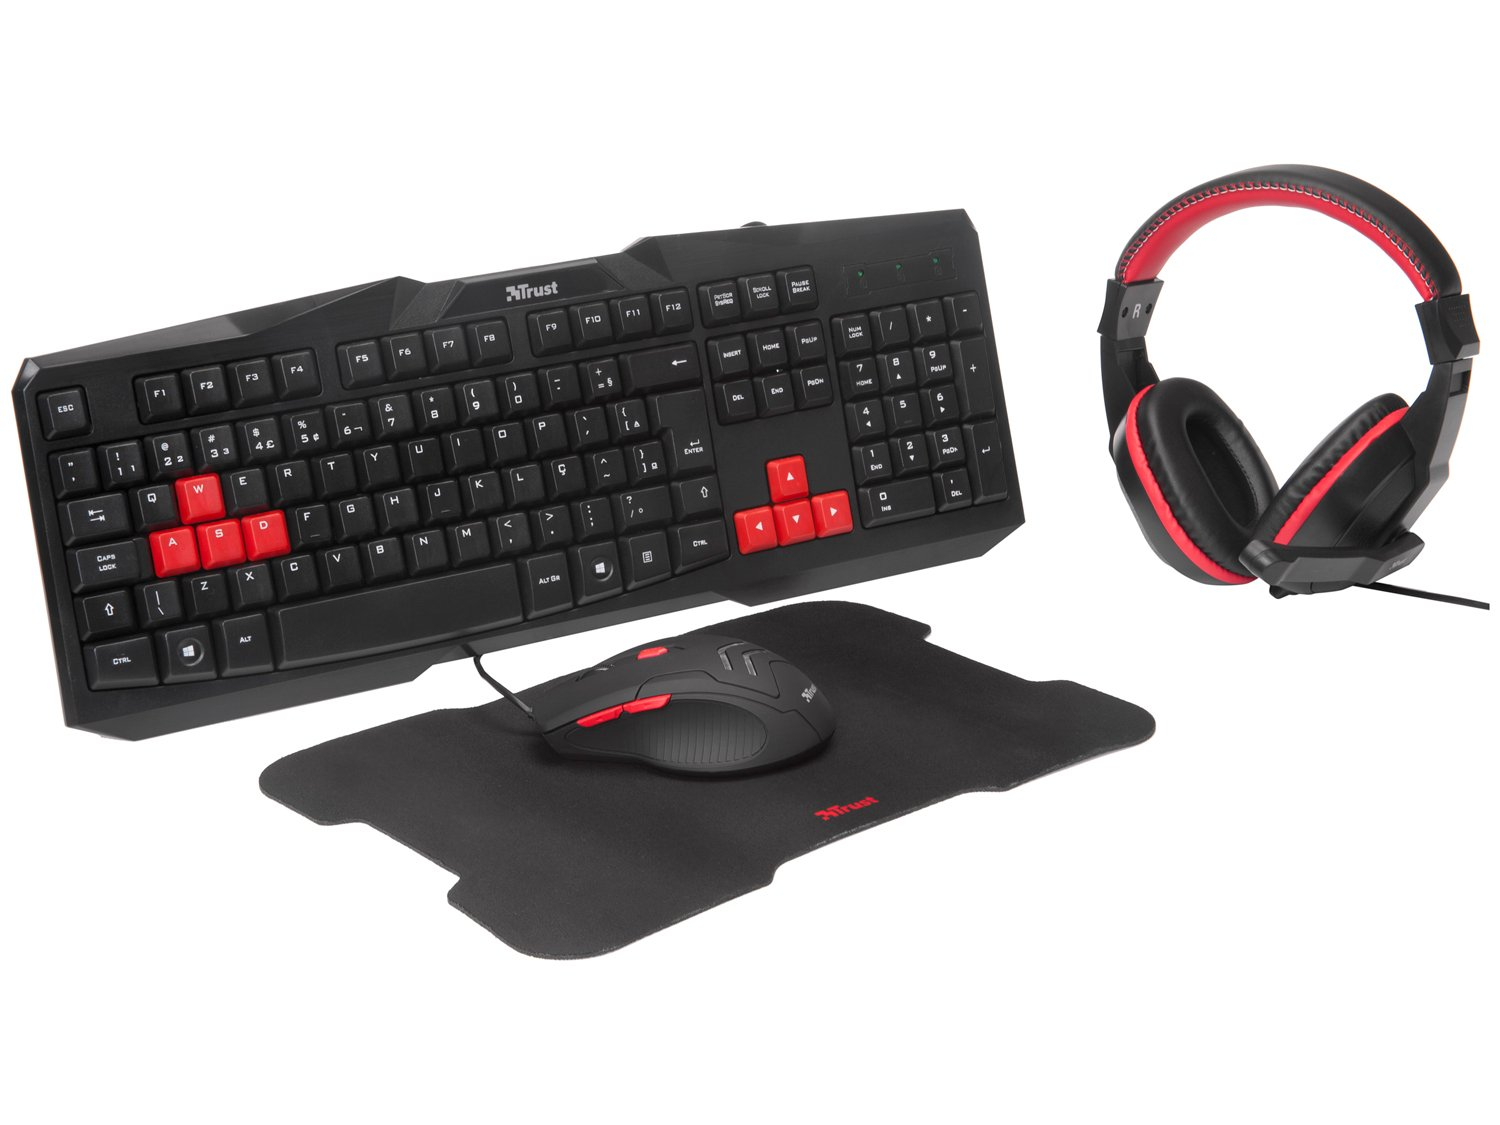 Kit Gamer Trust Teclado e Mouse com Headset - Mouse Pad ZIVA + Rainbow Six Siege Starter Edition